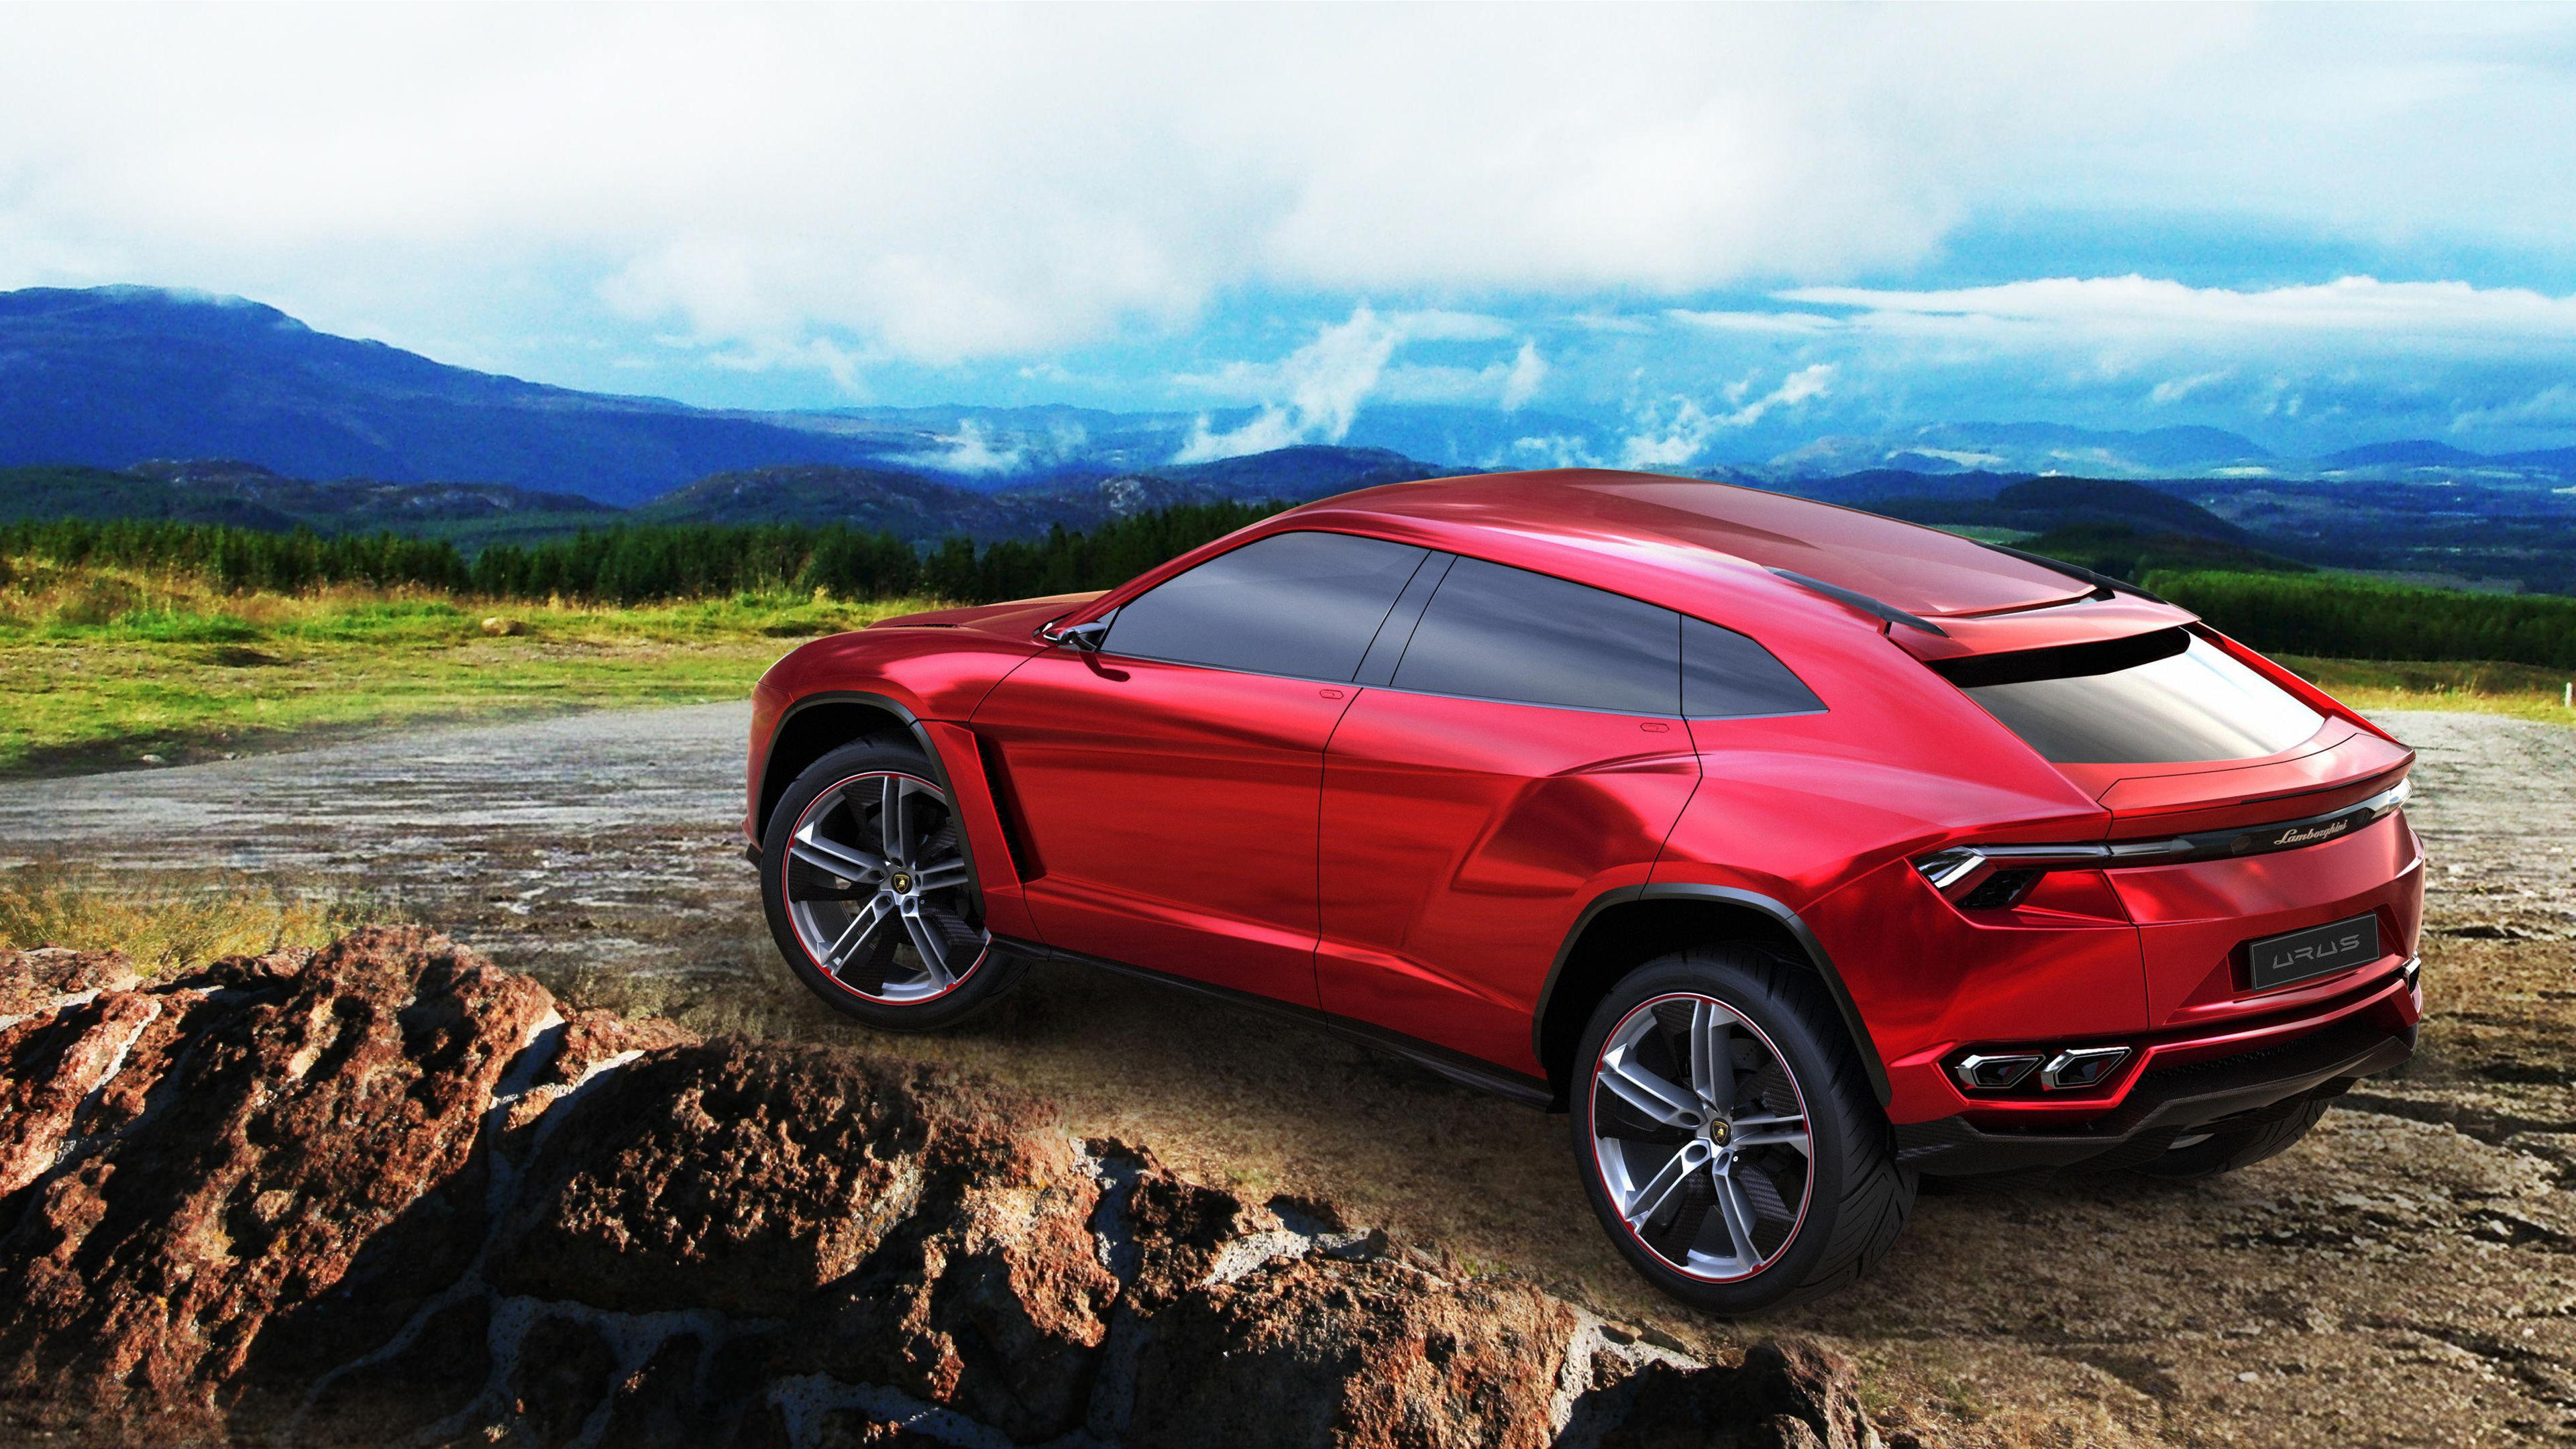 Lamborghini Urus Wallpapers Wallpaper Cave